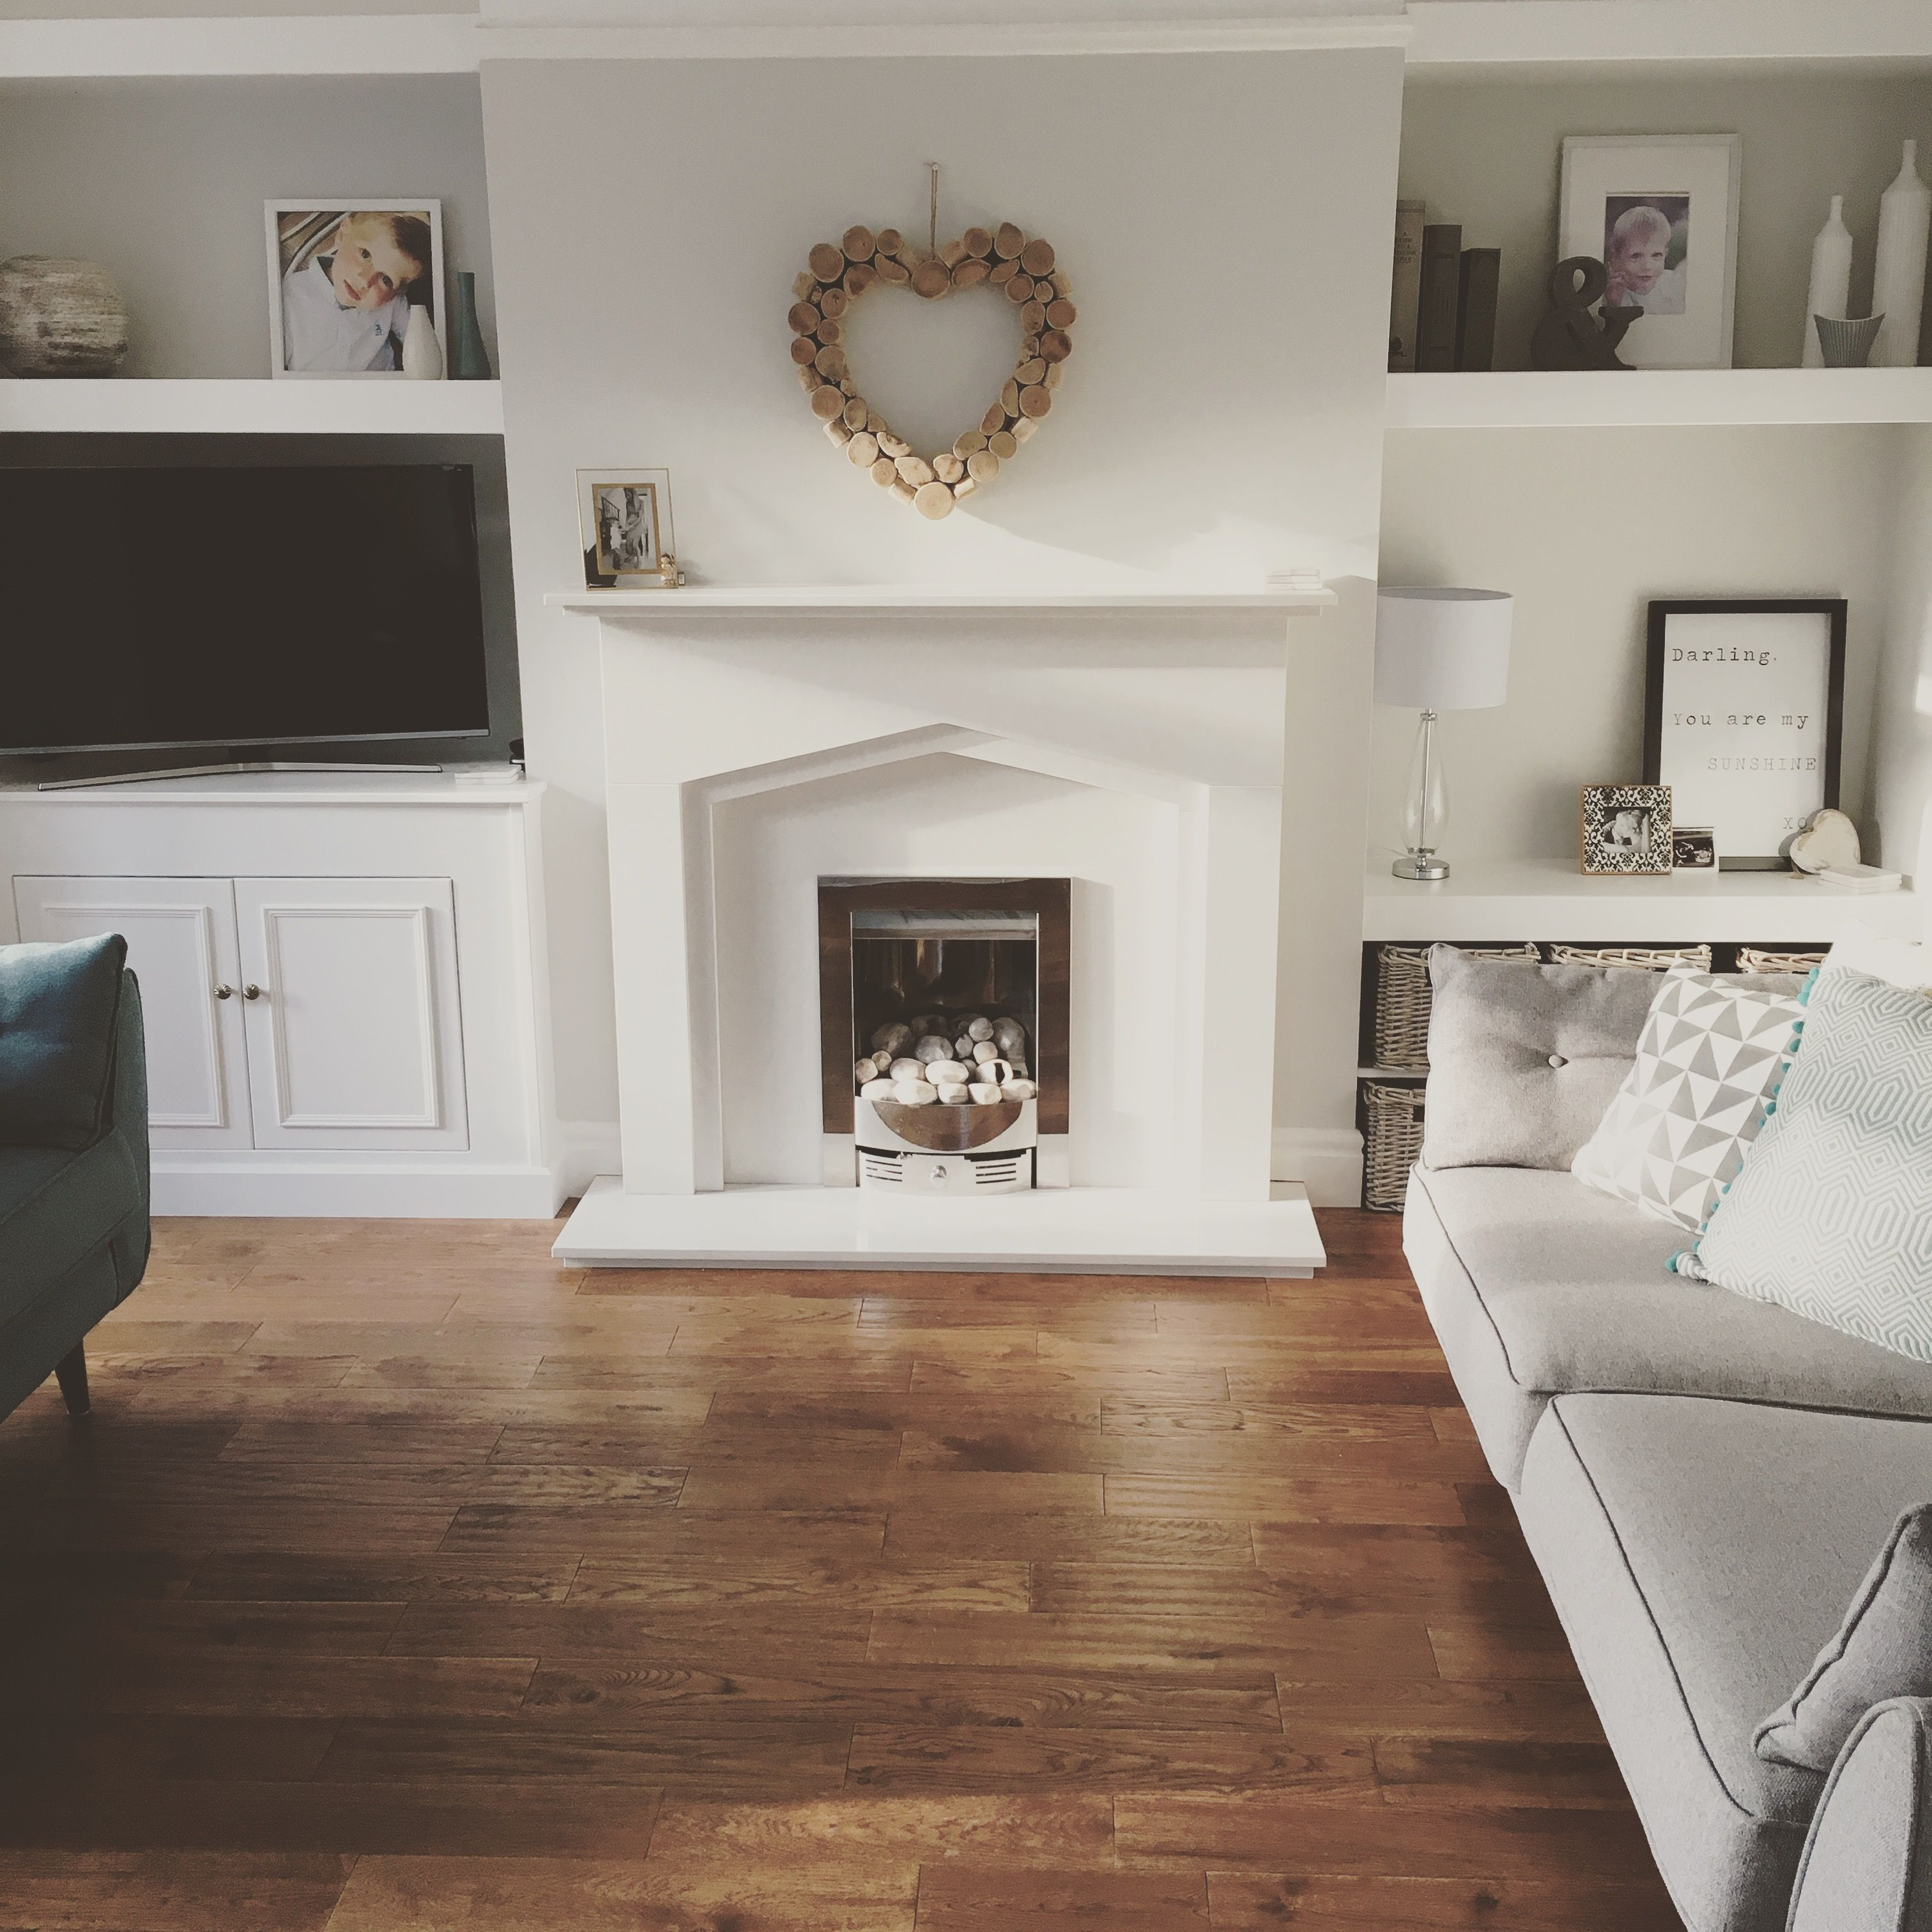 Living Room Built In Shelves Shelves In The Alcoves White Fireplace Living Room Design Shelf De Cosy Living Room Living Room Shelves Living Room With Fireplace